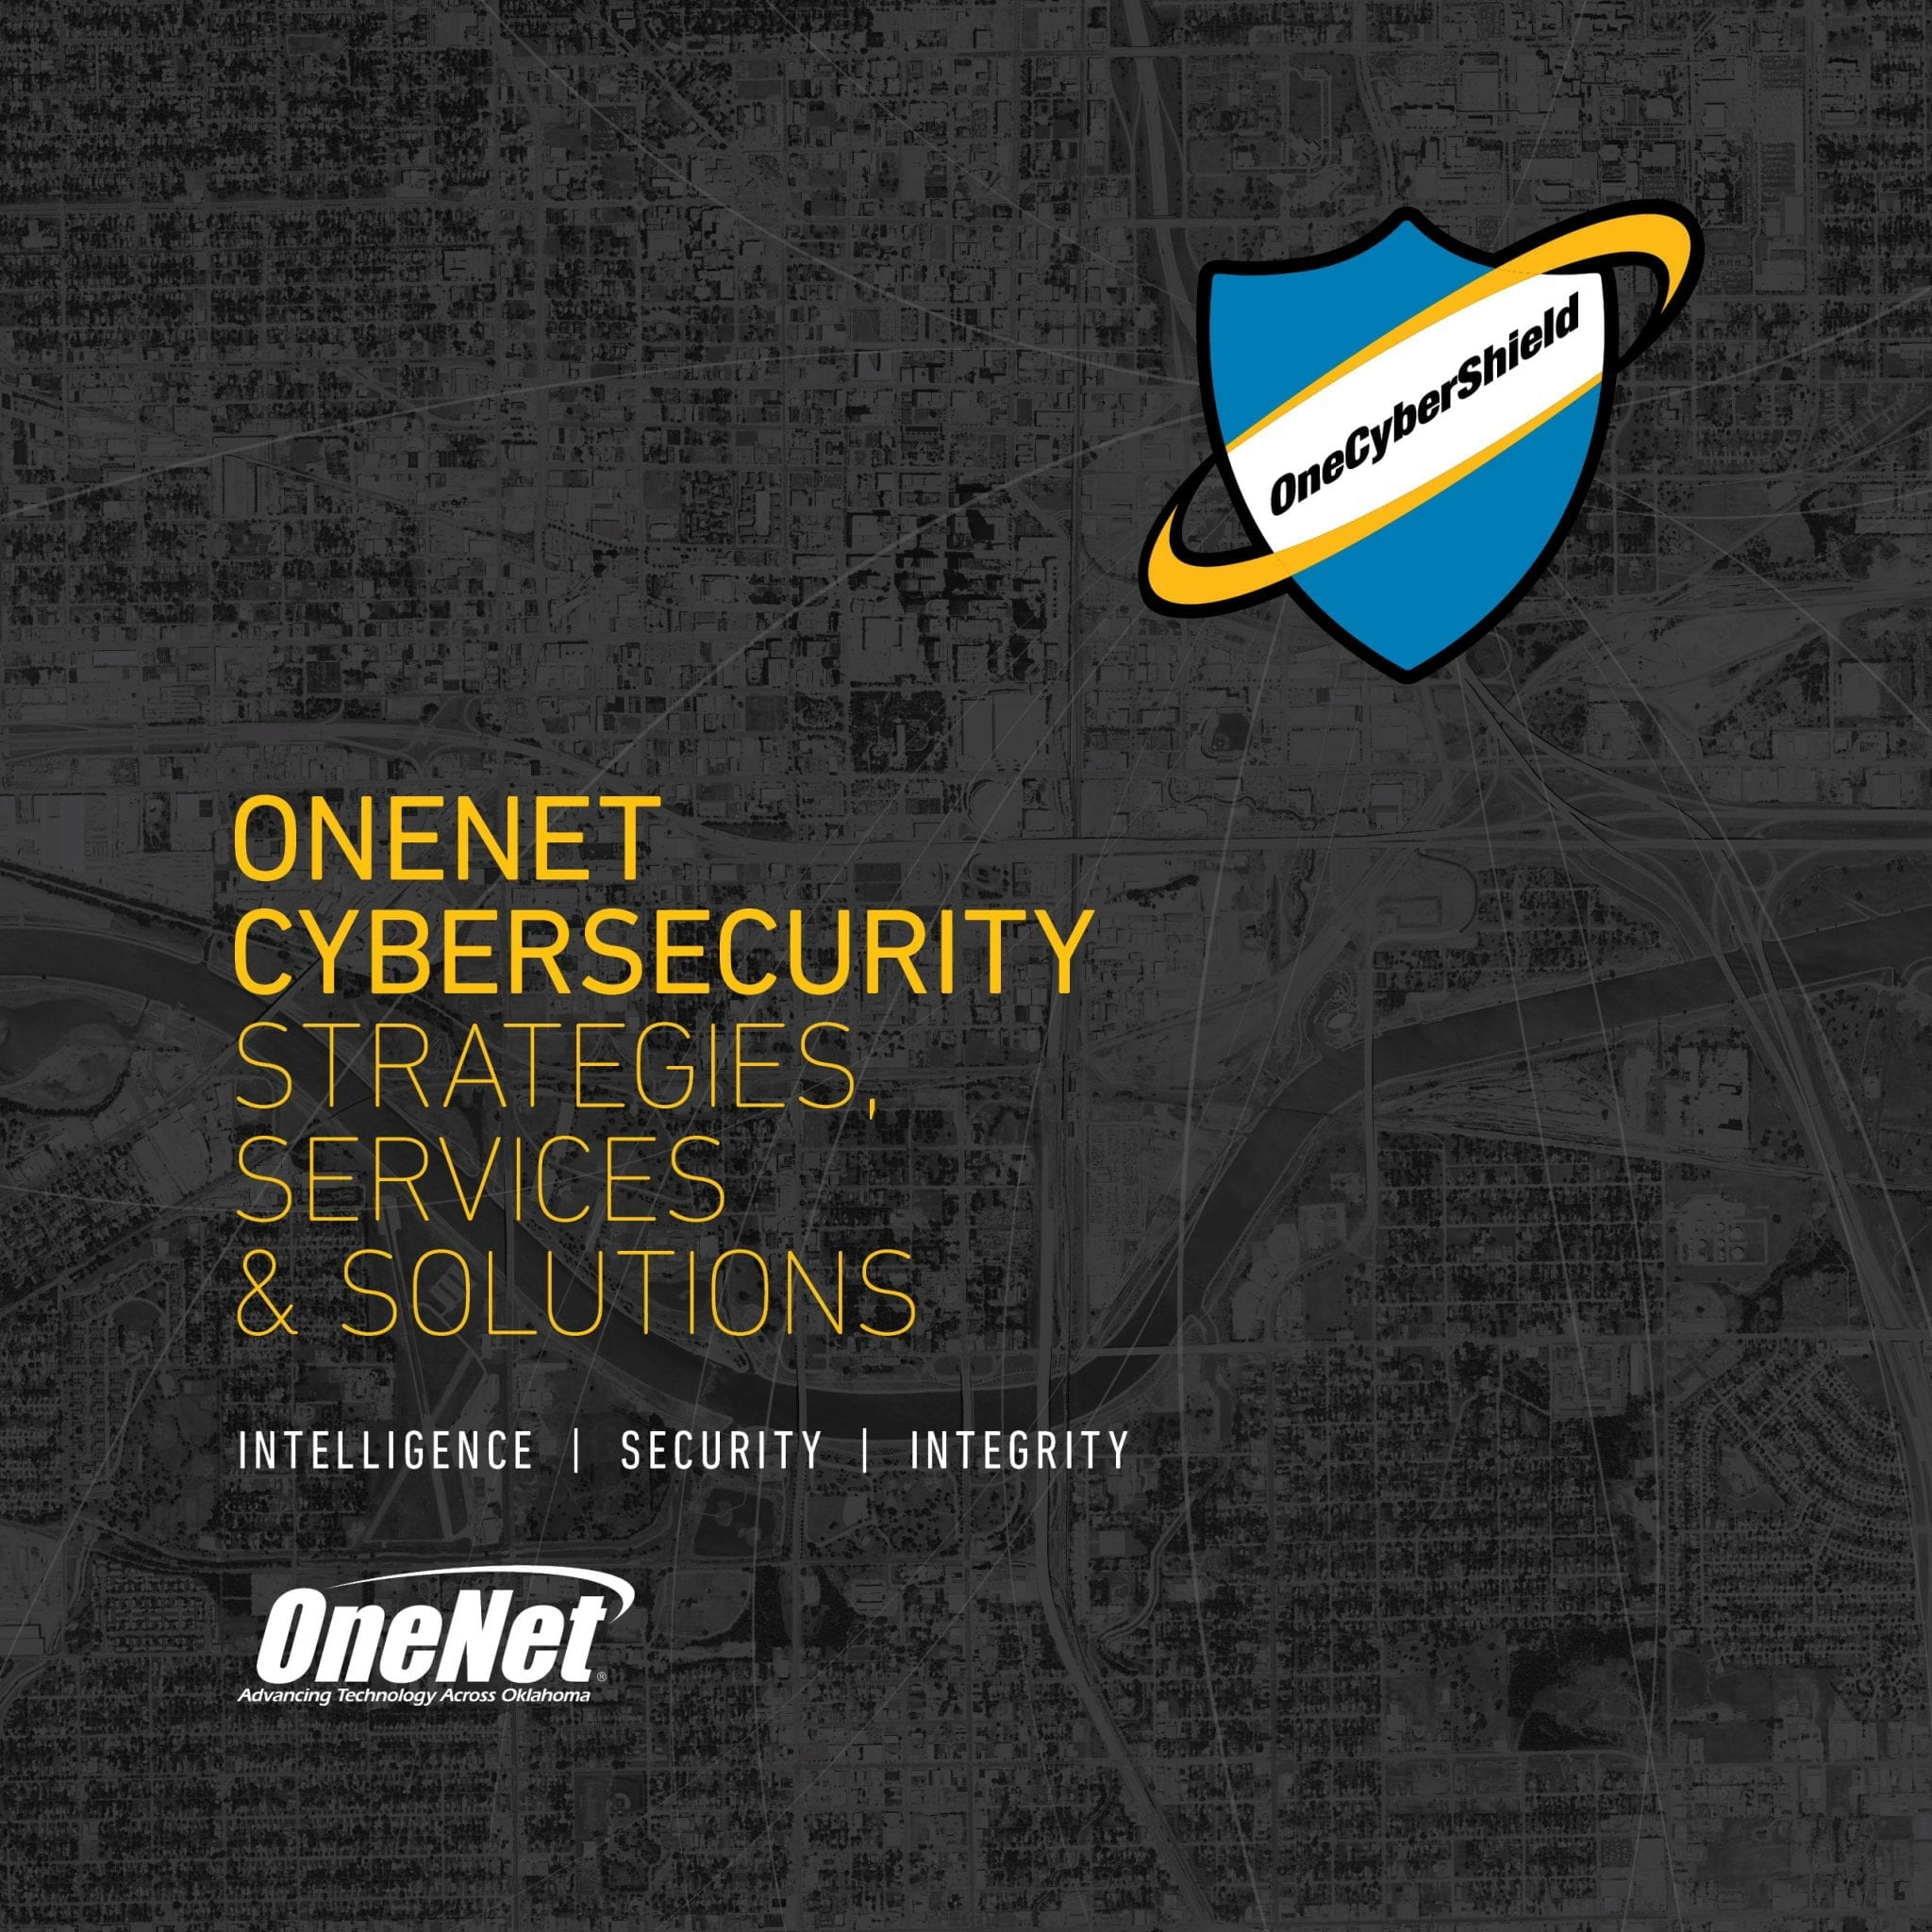 OneNet Cybersecurity Report Cover - Strategies, Services & Solutions - Intelligence, Security, Integrity